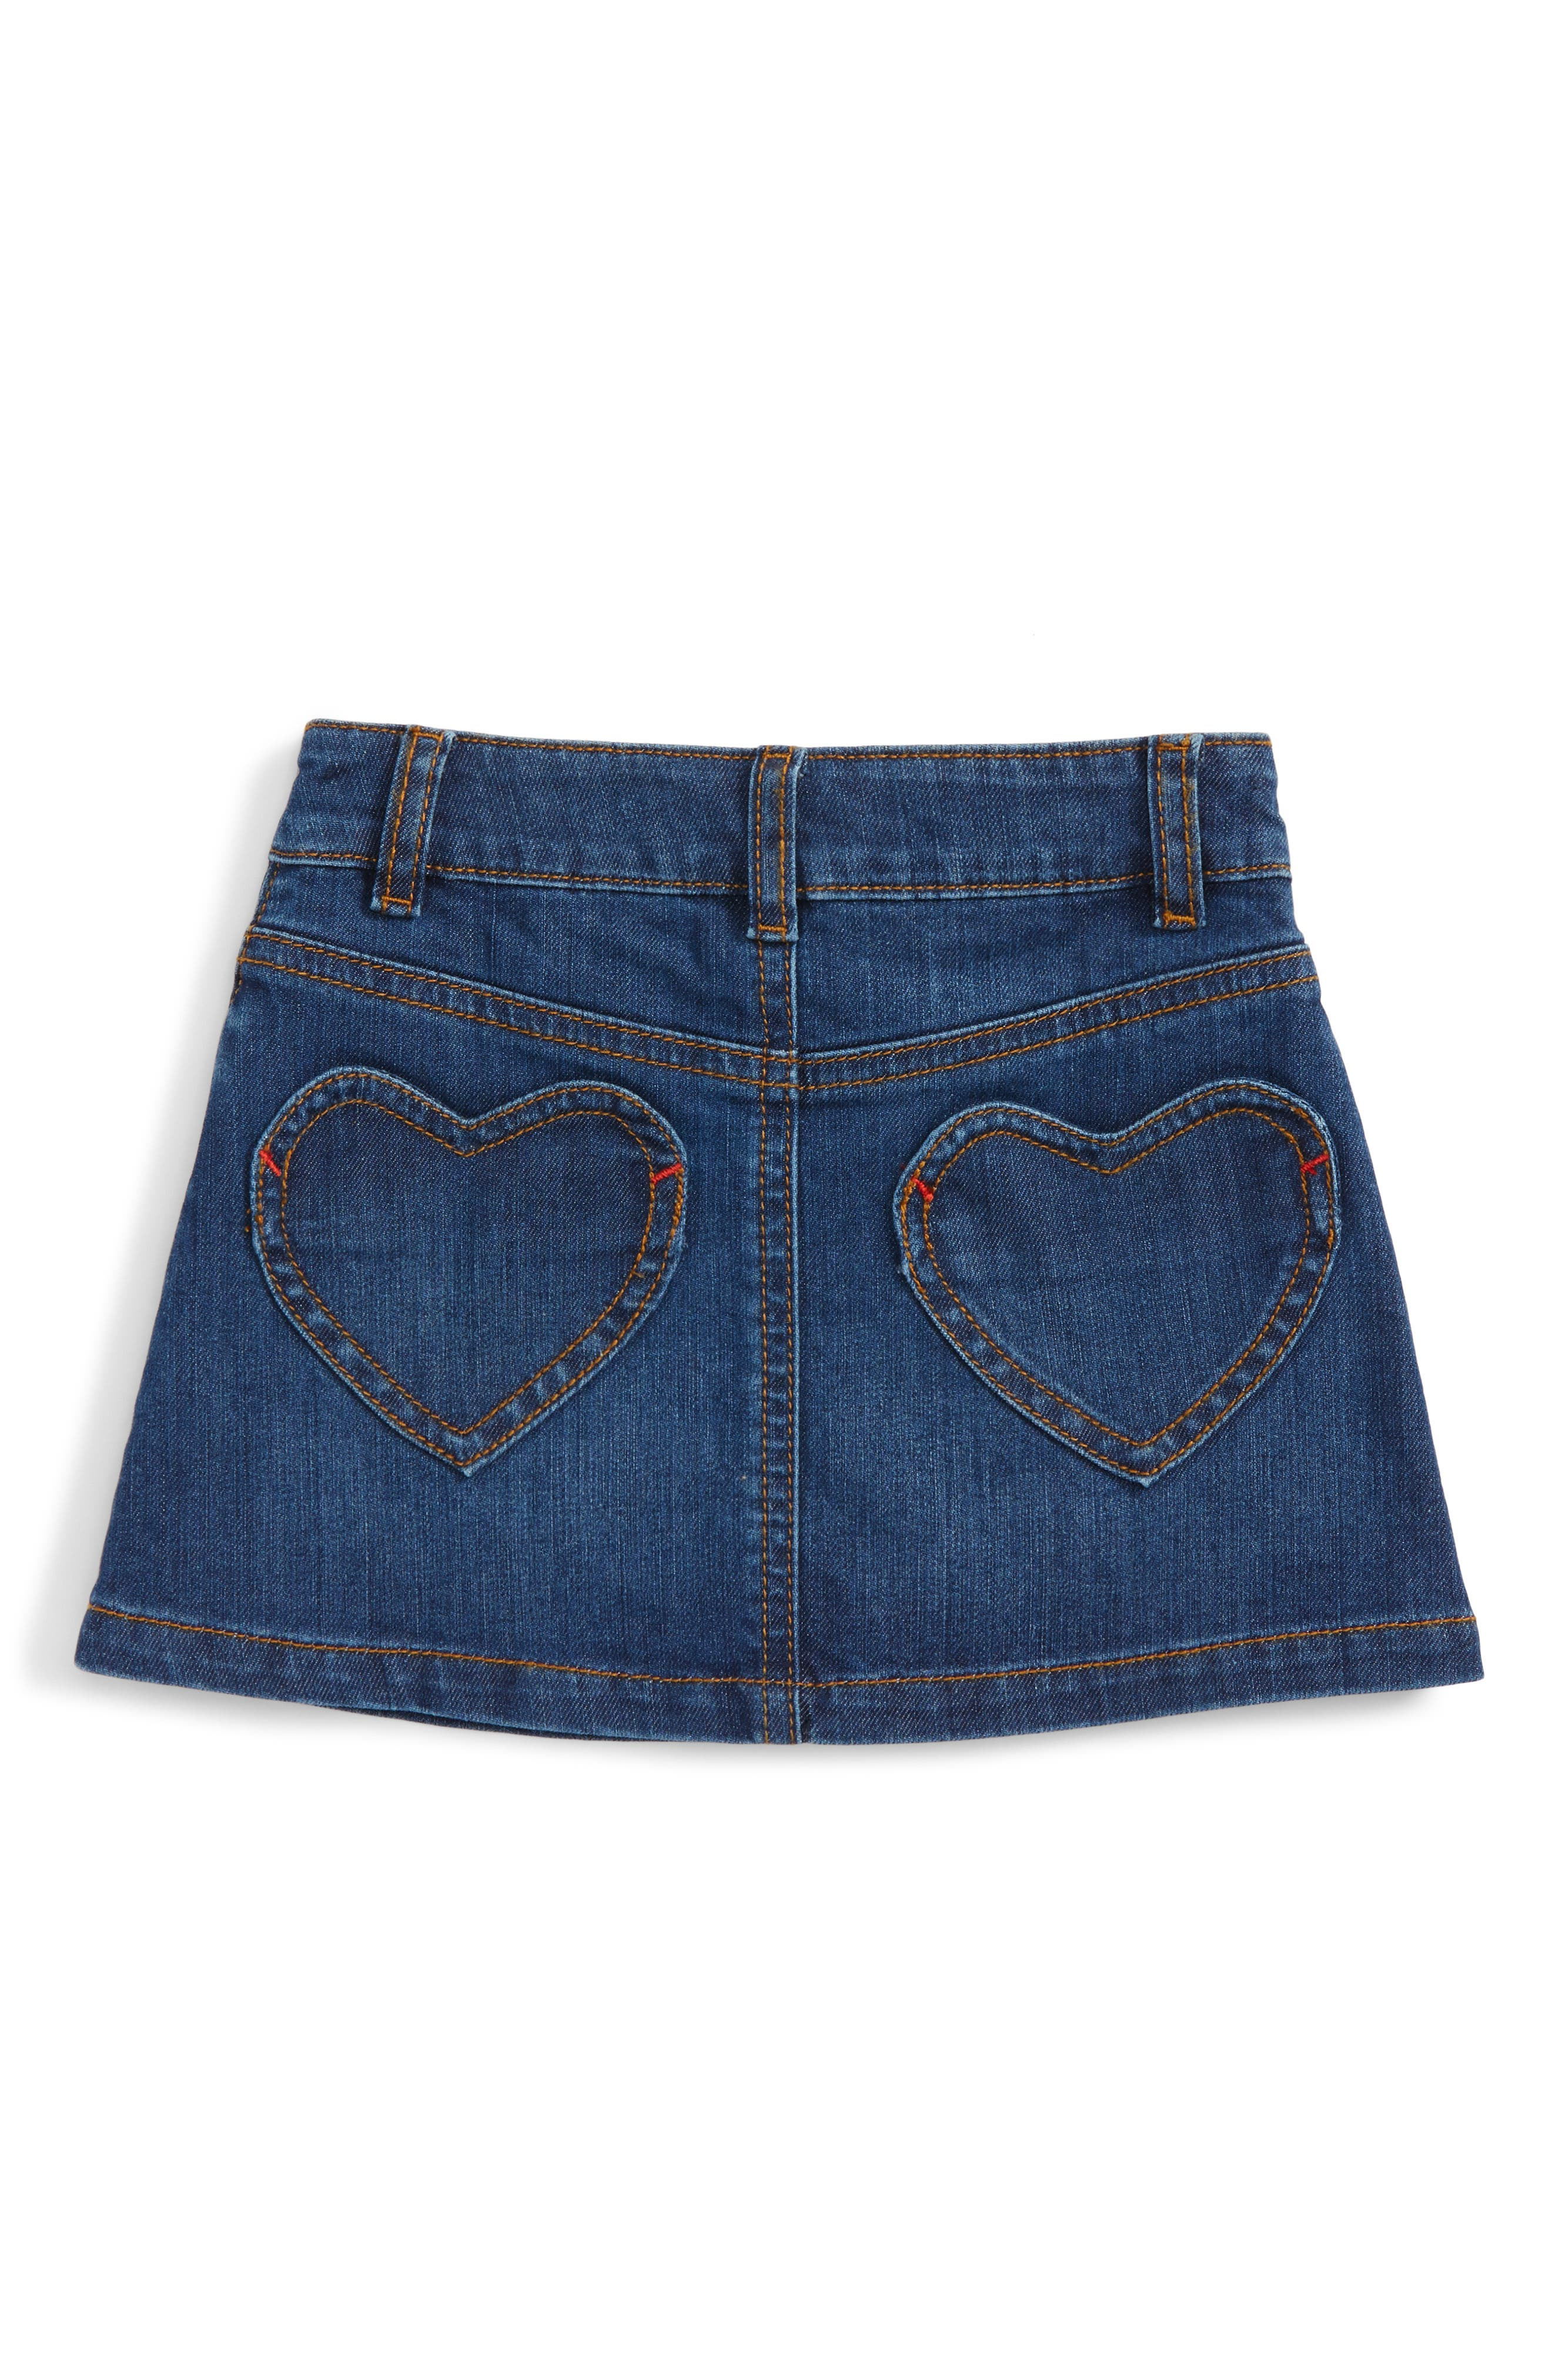 Heart Pocket Denim Skirt,                             Alternate thumbnail 2, color,                             Blue Vintage